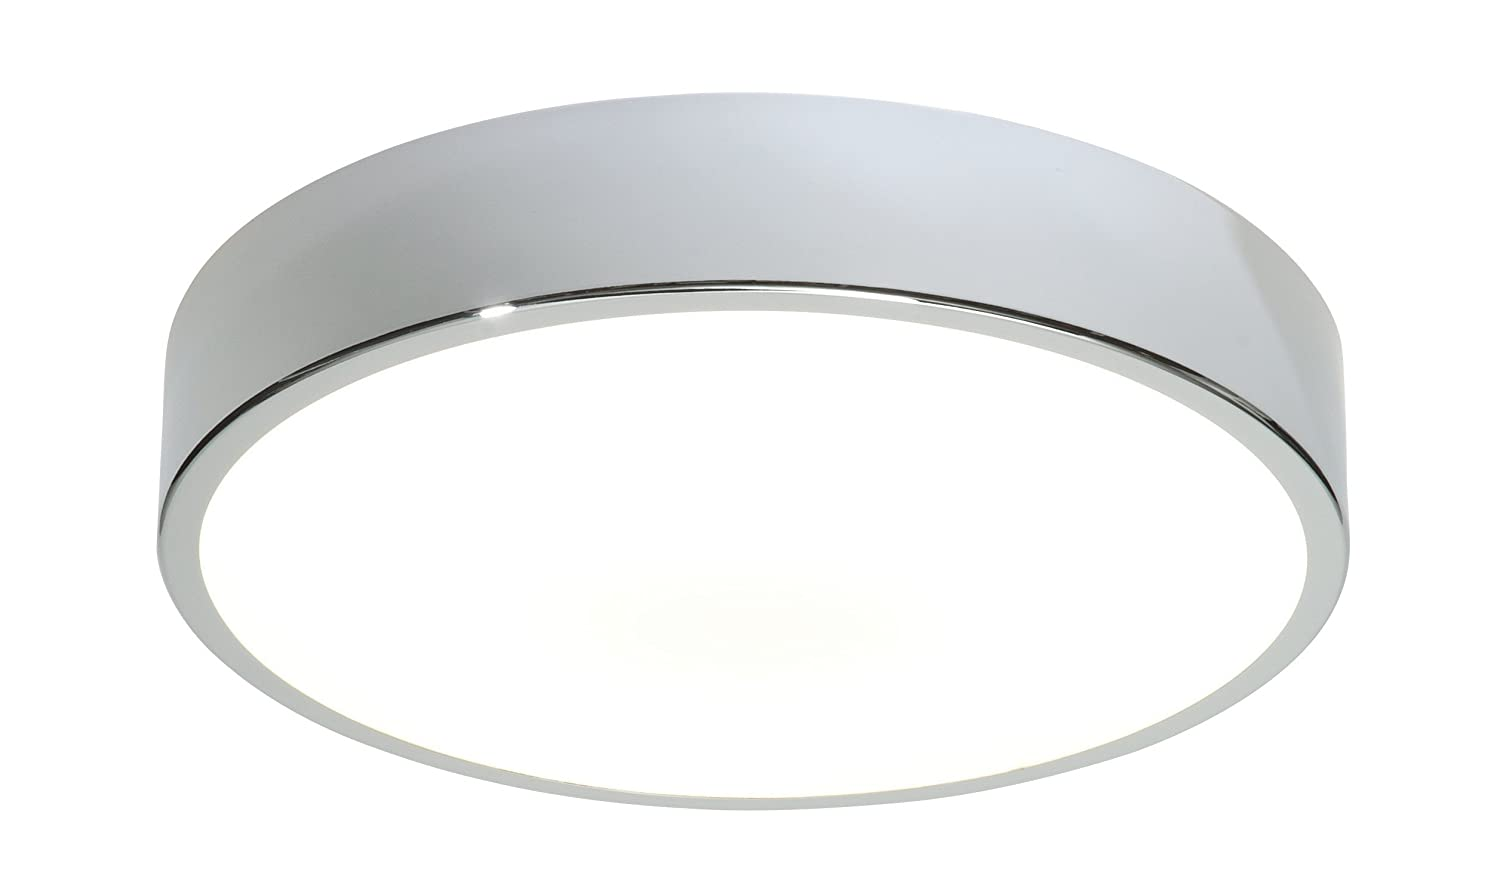 Poole Lighting Spa 28w GR10q 2D 4 Pin Bathroom Flush Light Chrome Plate IP44